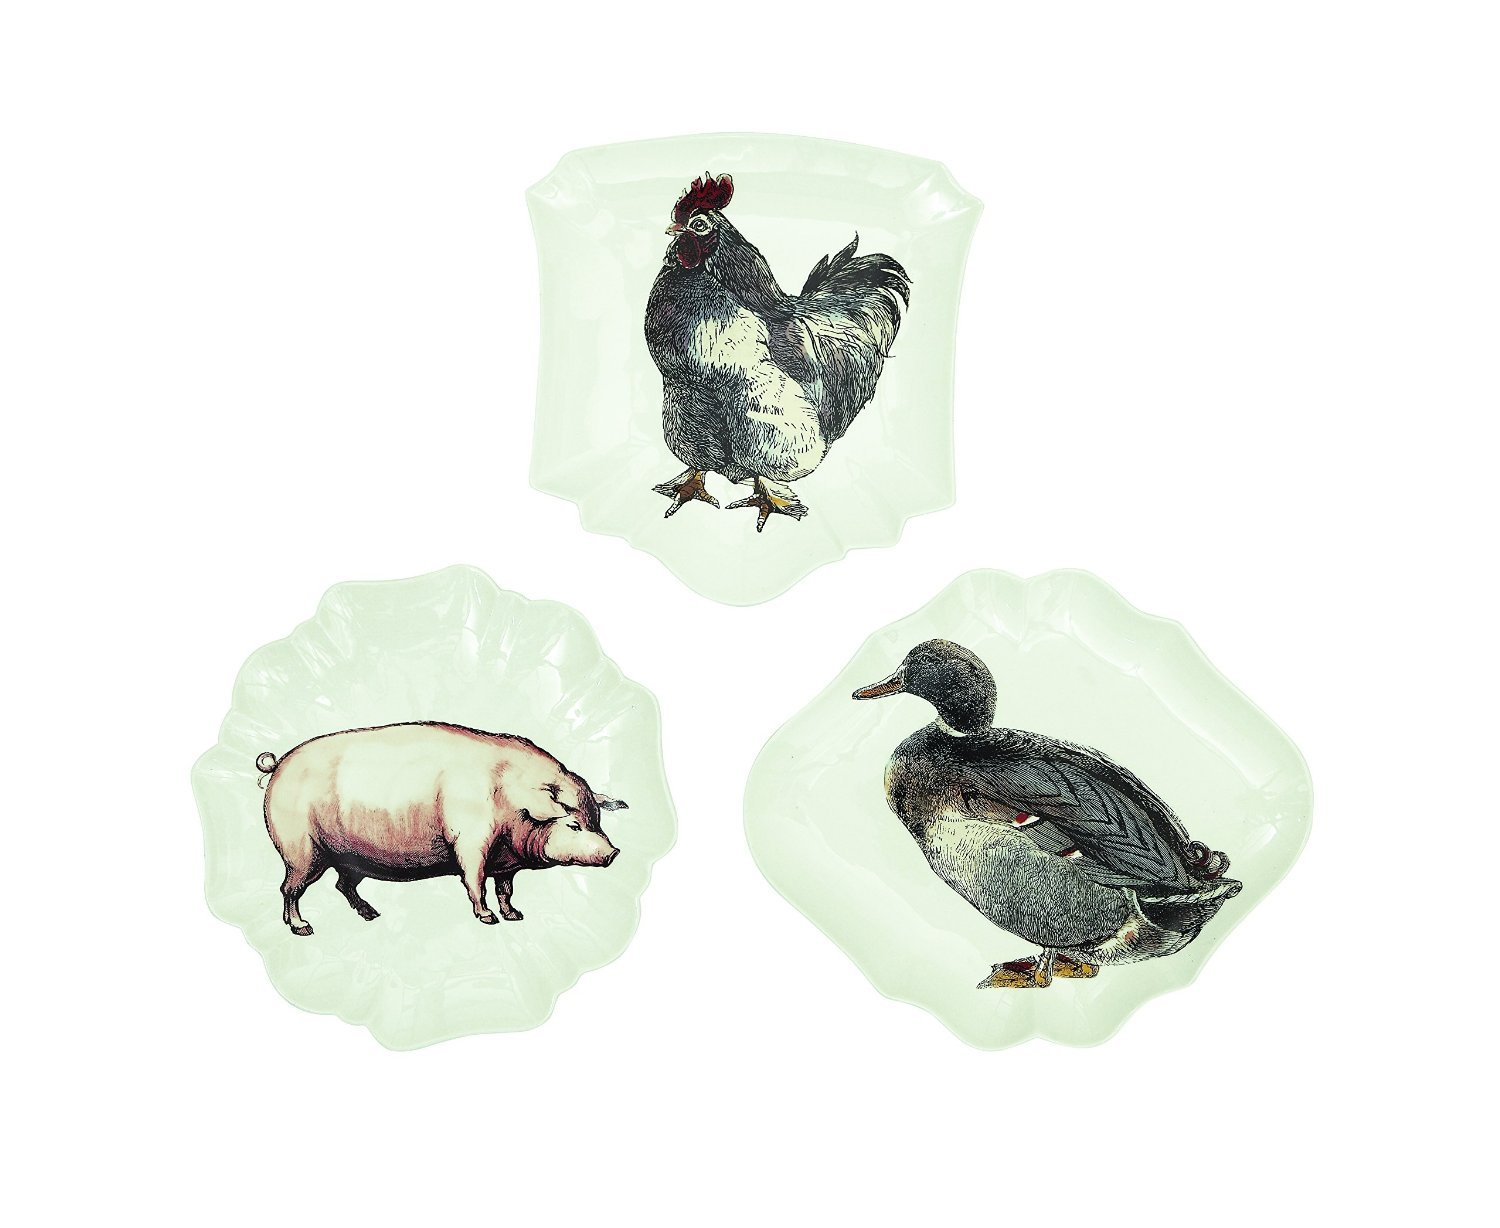 Creative Co-Op Medium Stoneware Plate Set with Animal Images, 10-Inch, Multicolor [並行輸入品]   B013D0YG6M